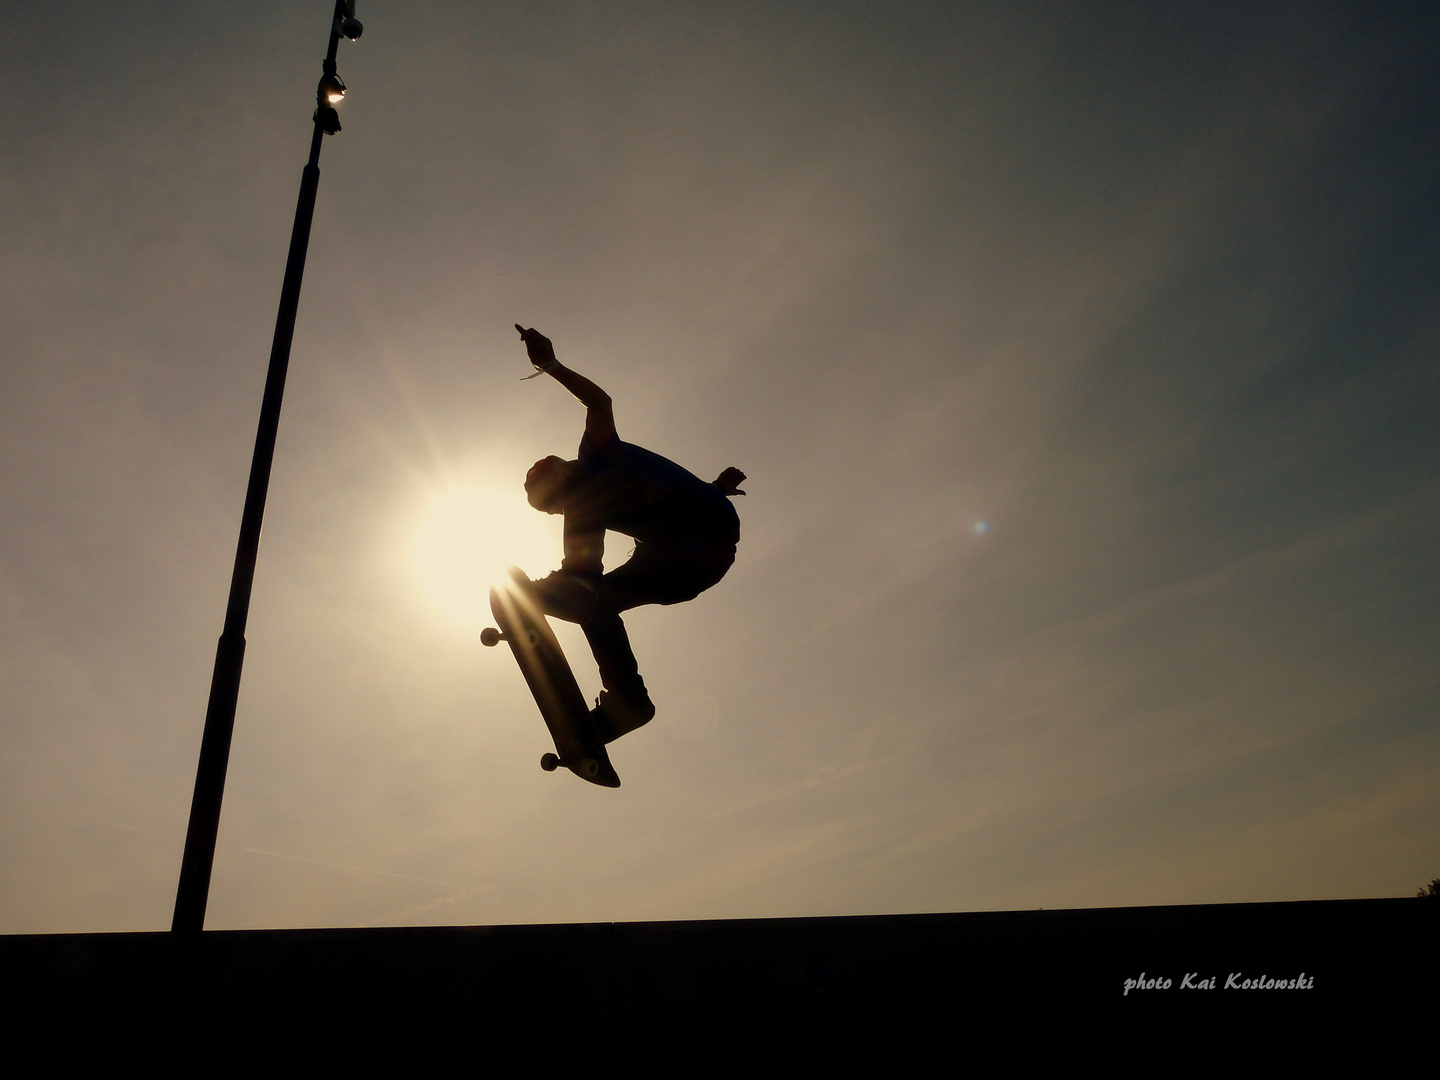 skate-kick on the sun